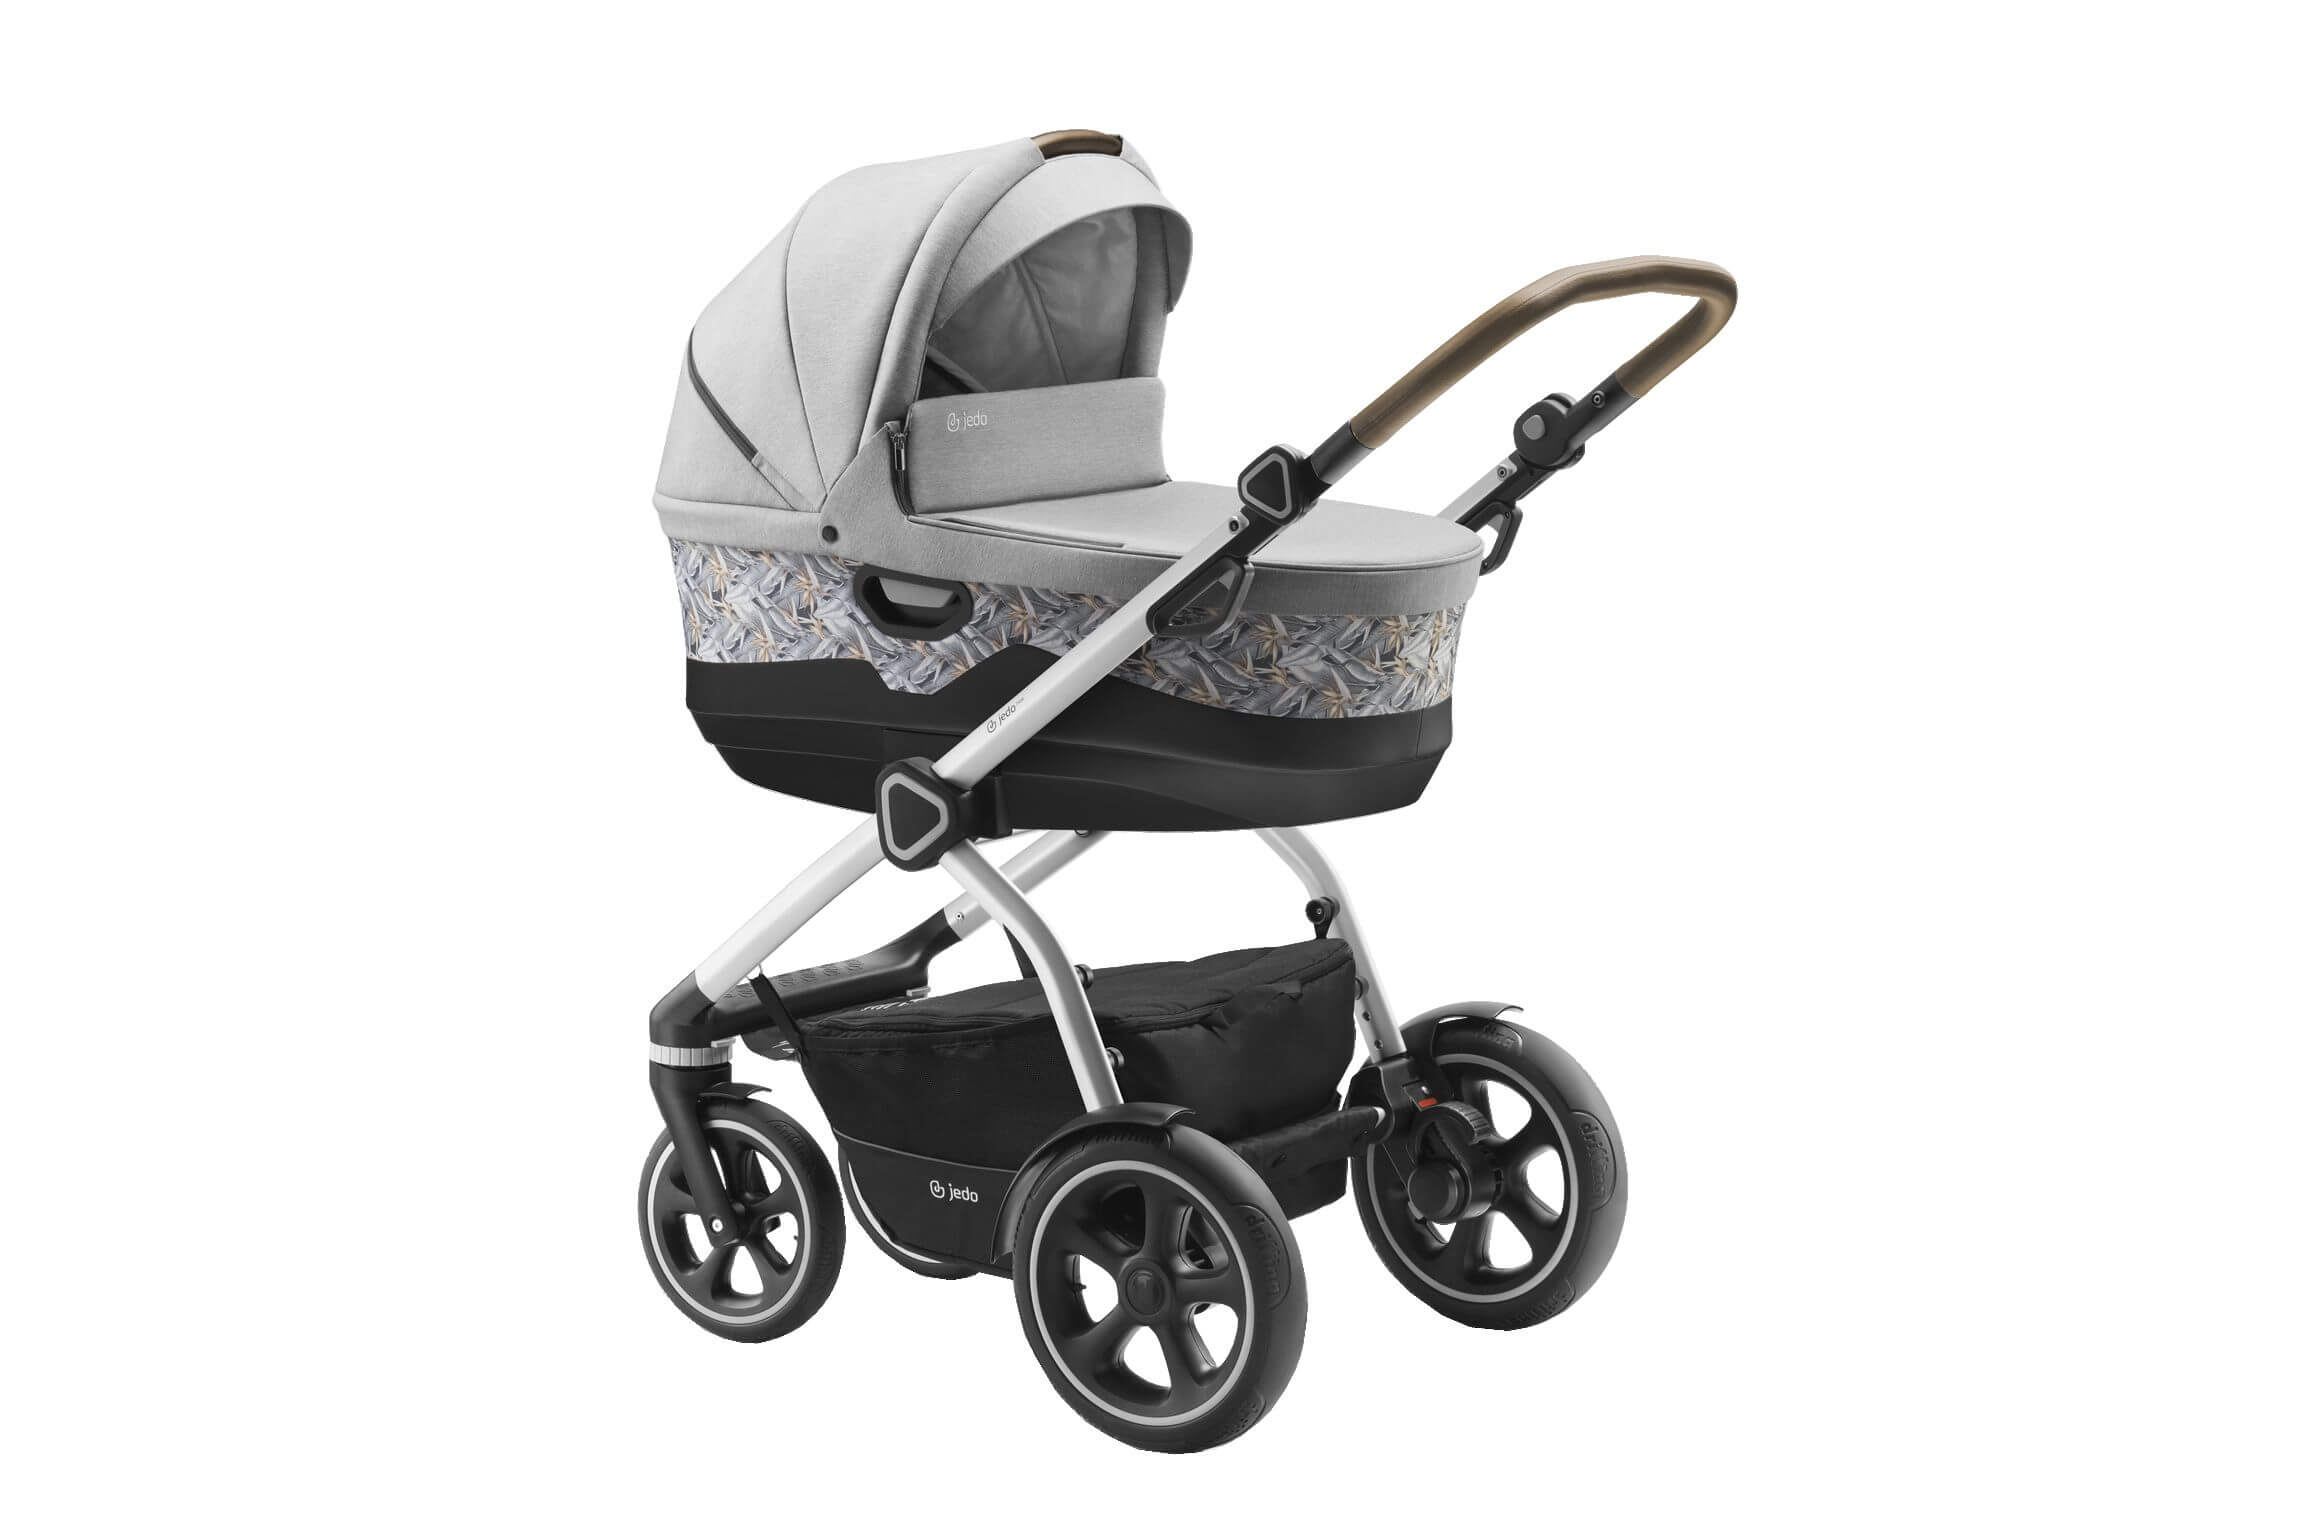 Baby stroller Jedo: photo and review of models, reviews 88